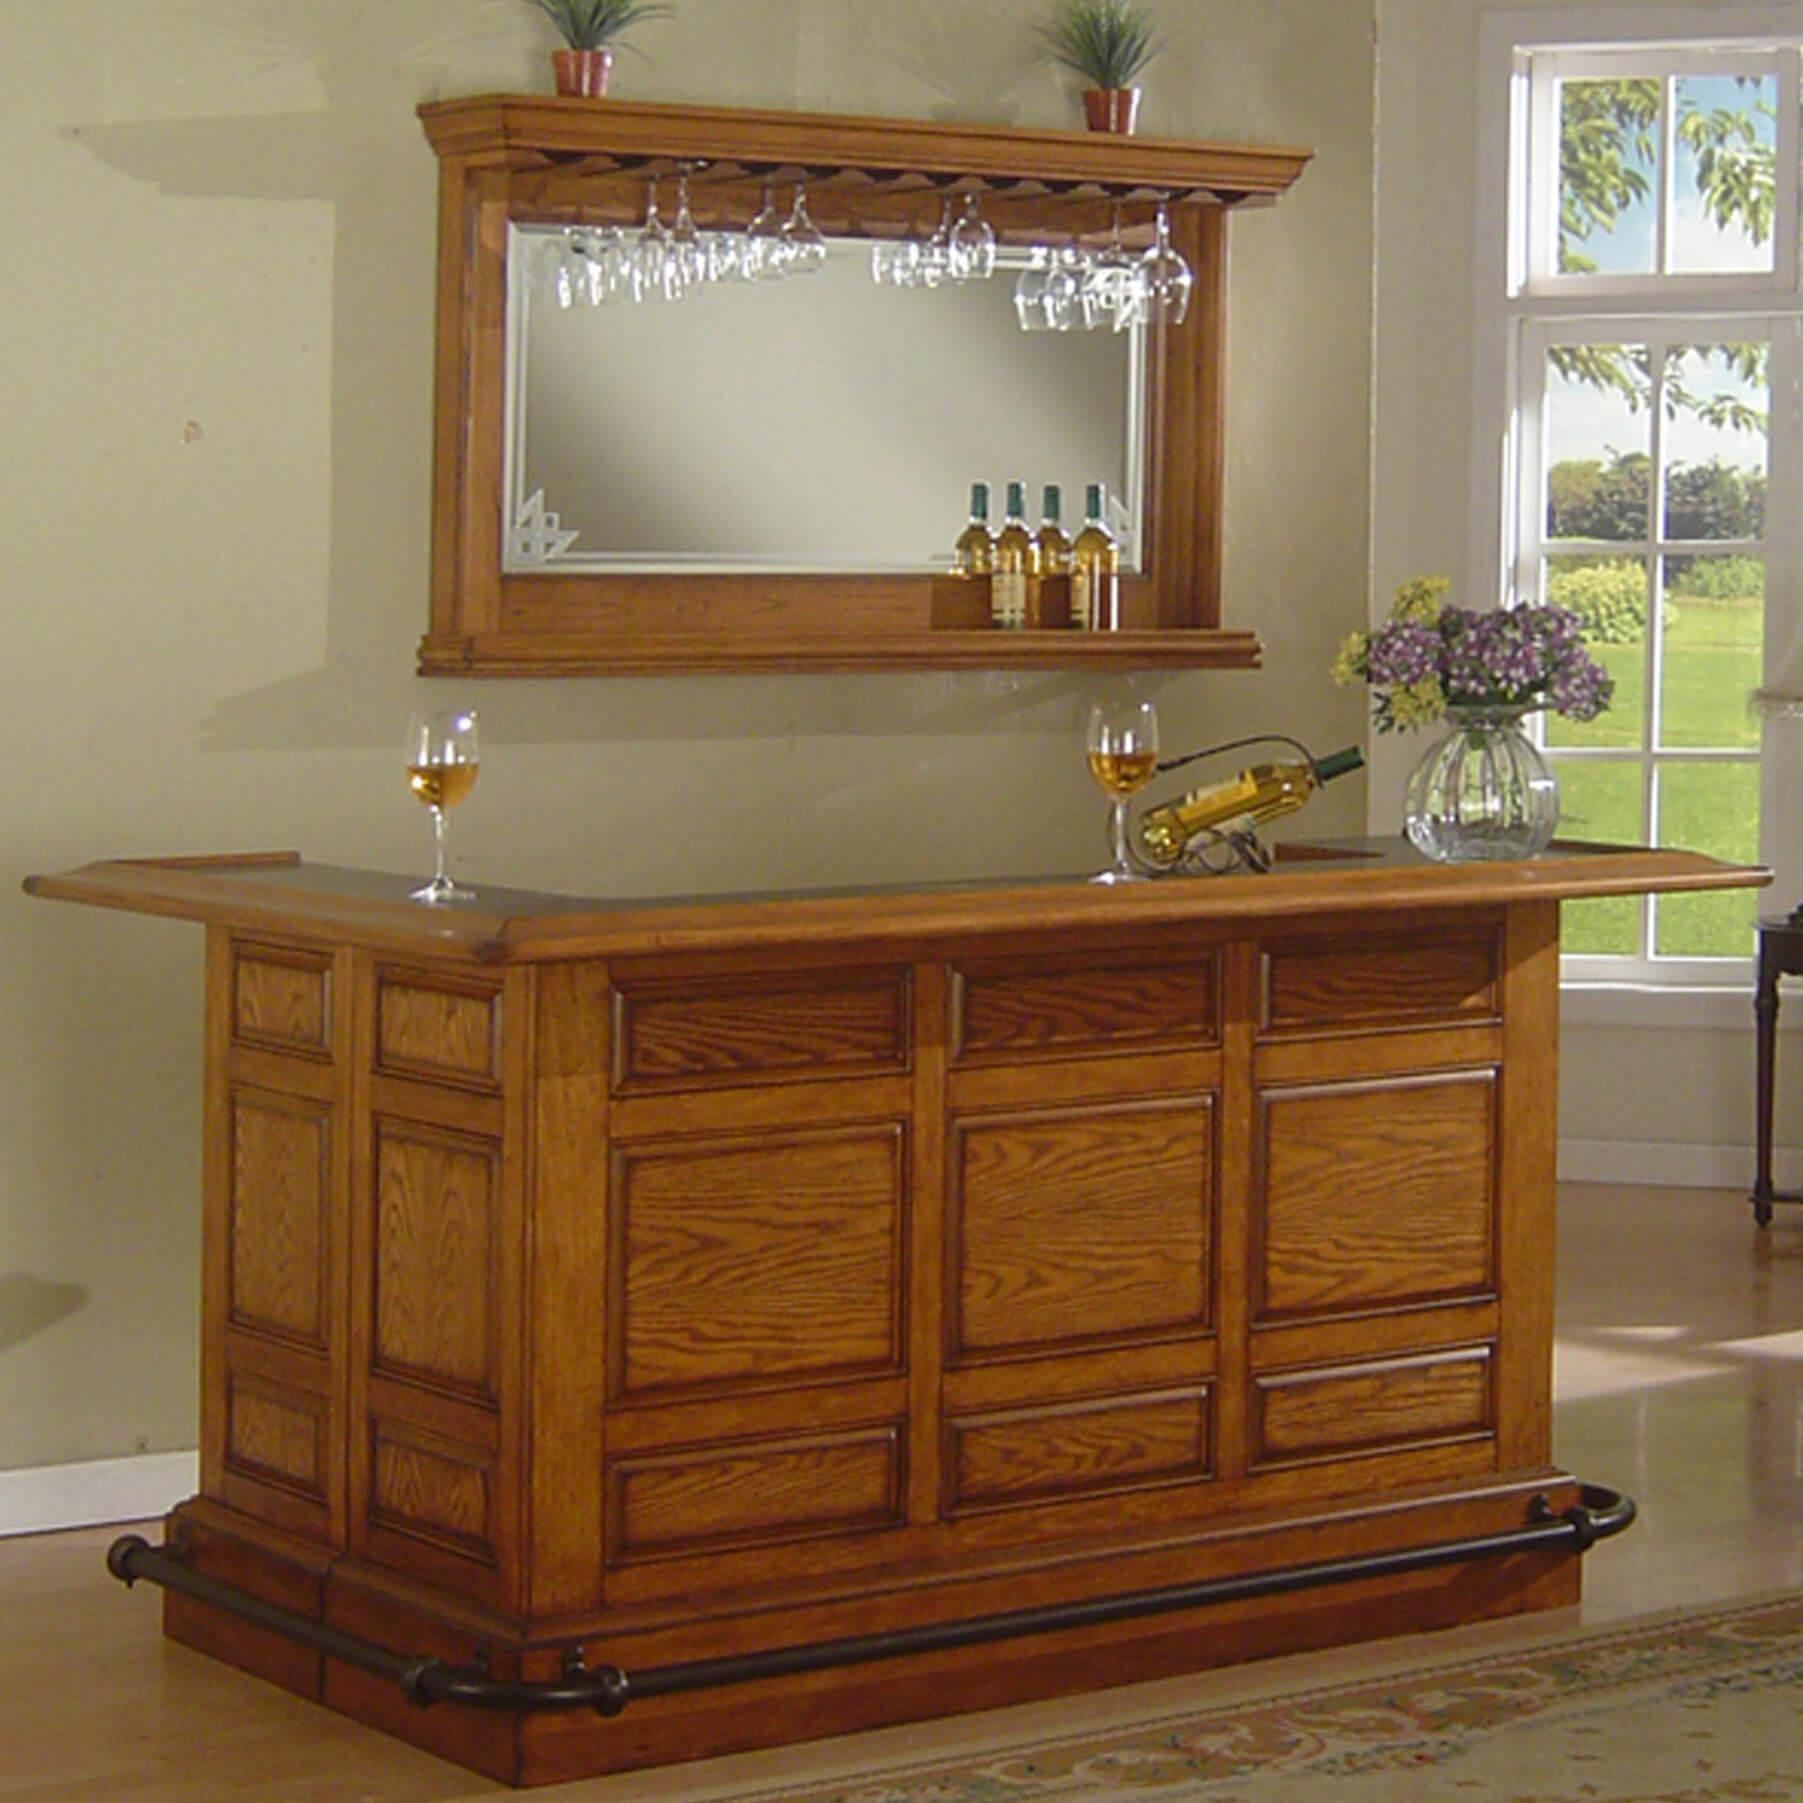 Attrayant Solid Wood Home Bar With Wrap Around Counter.